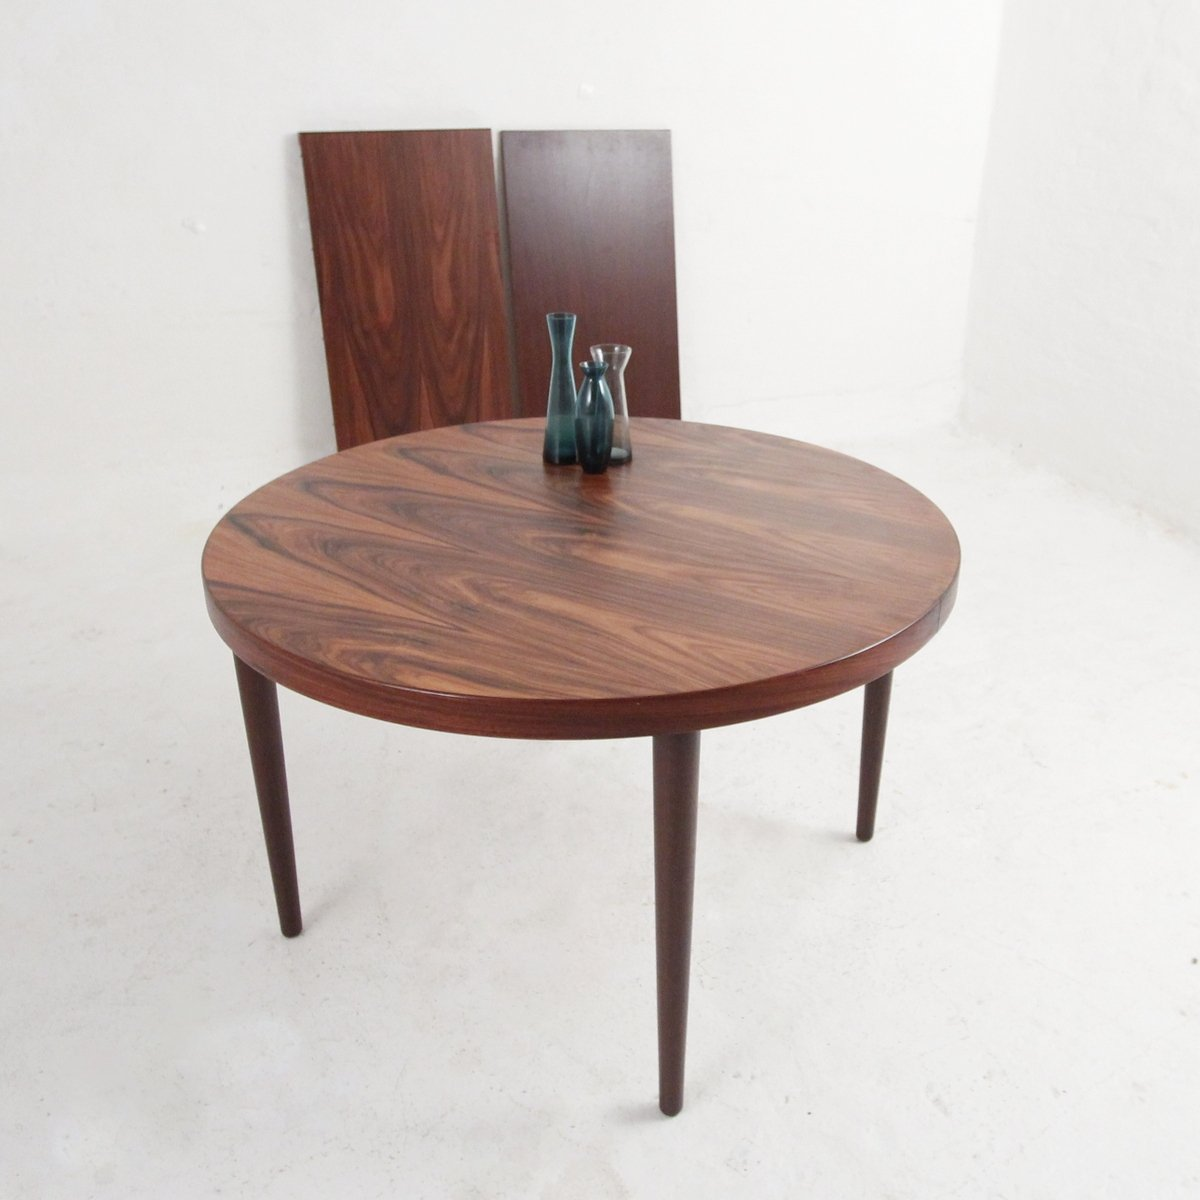 Round Dining Table In Rosewood By Kai Kristiansen 89186